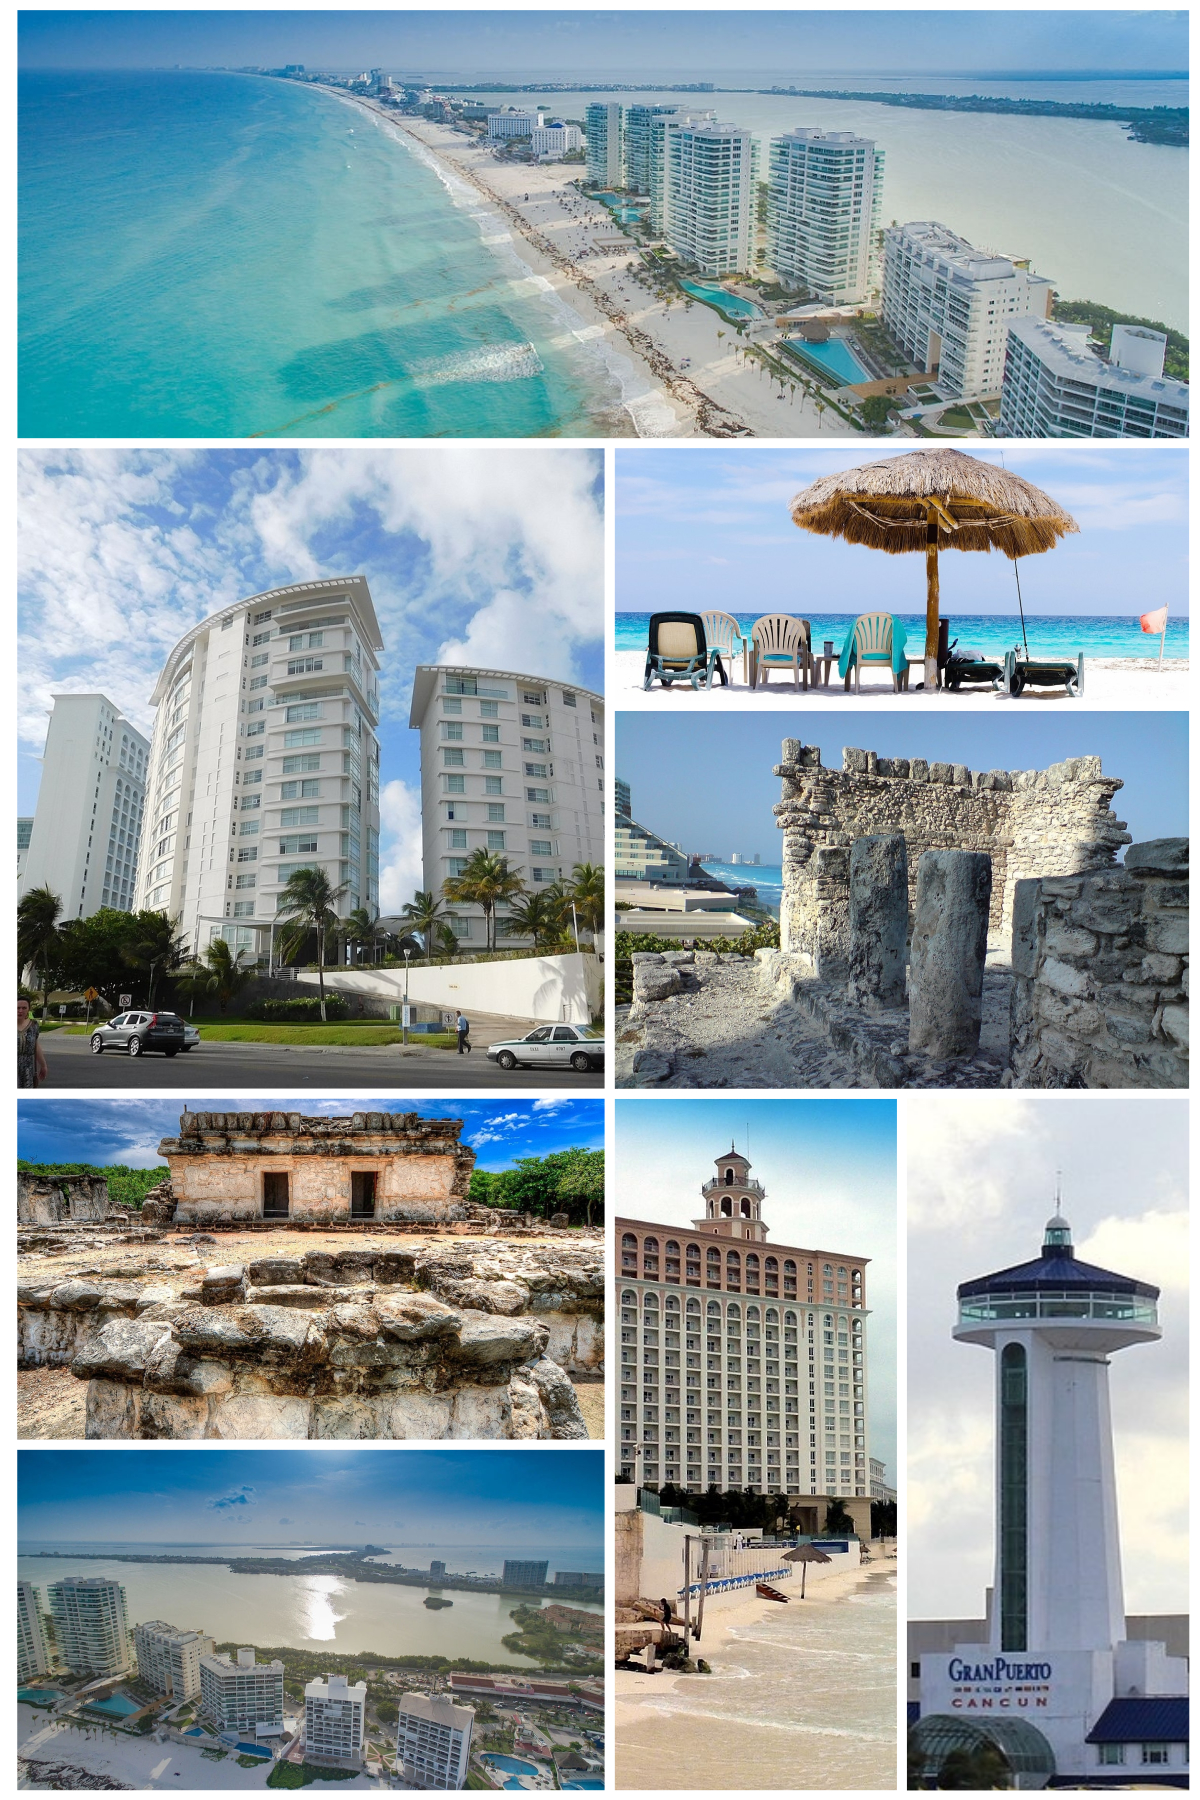 Cancún - Wikiwand